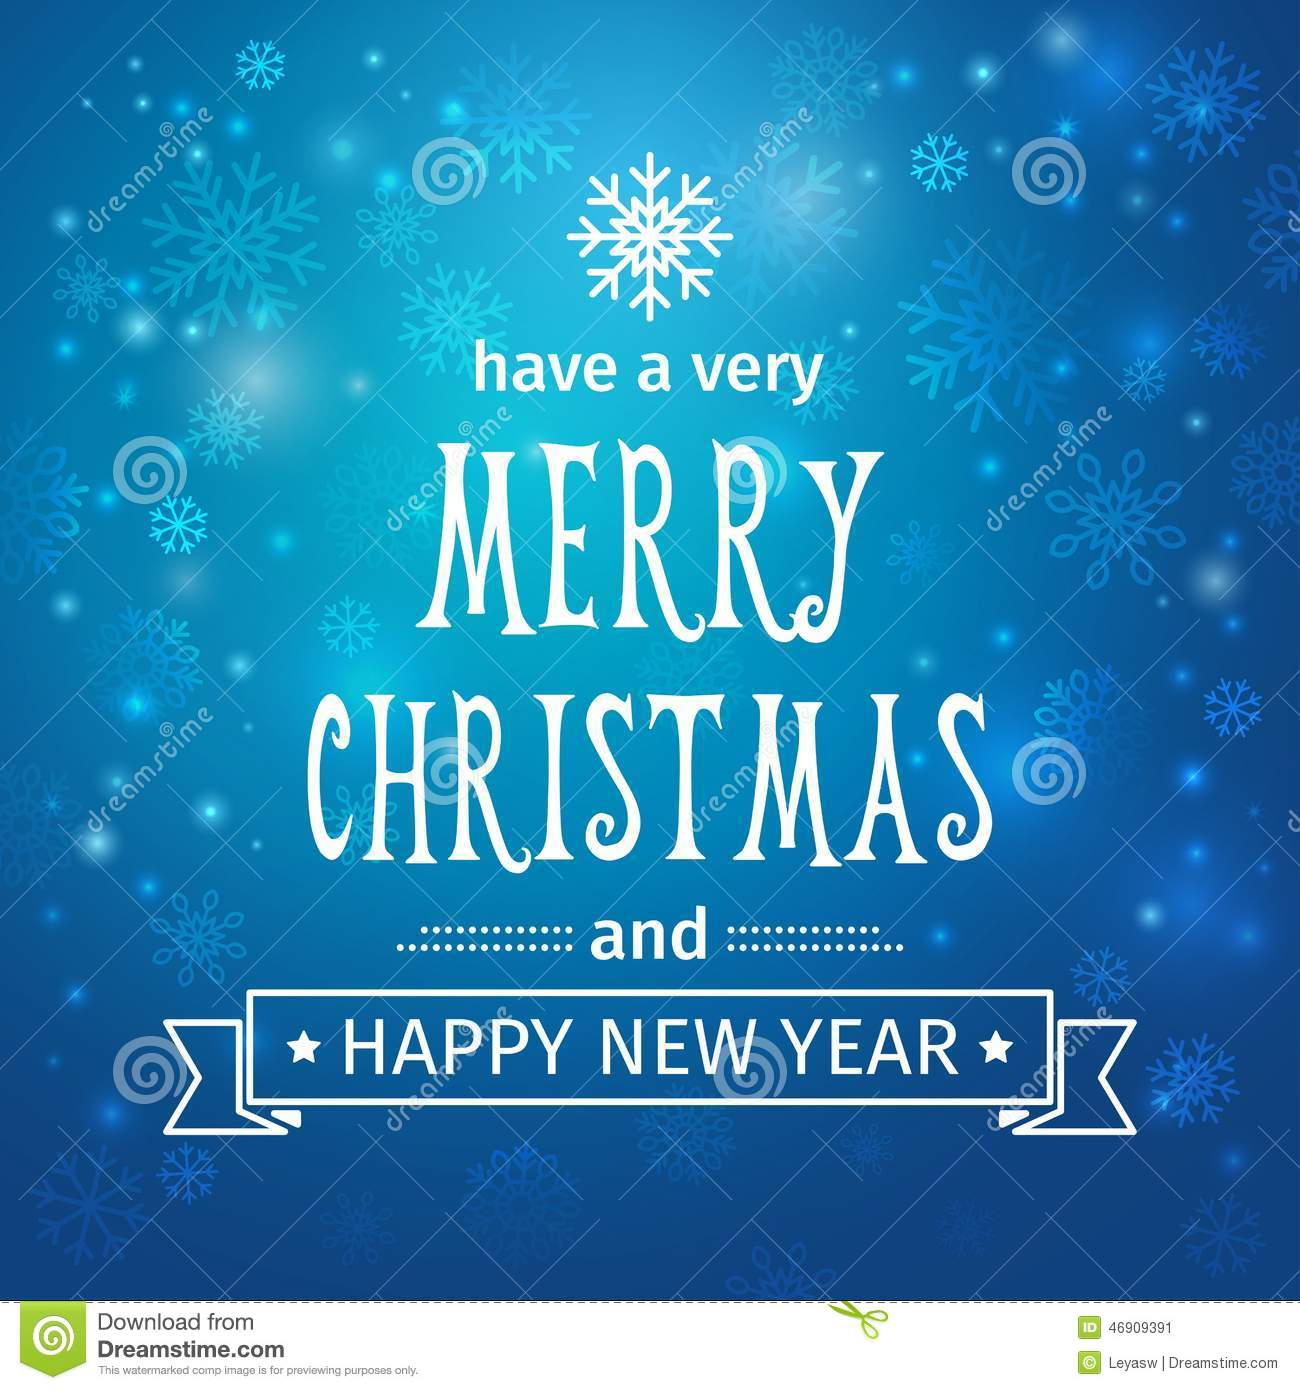 greeting card merry christmas and happy new year background with snowflakes